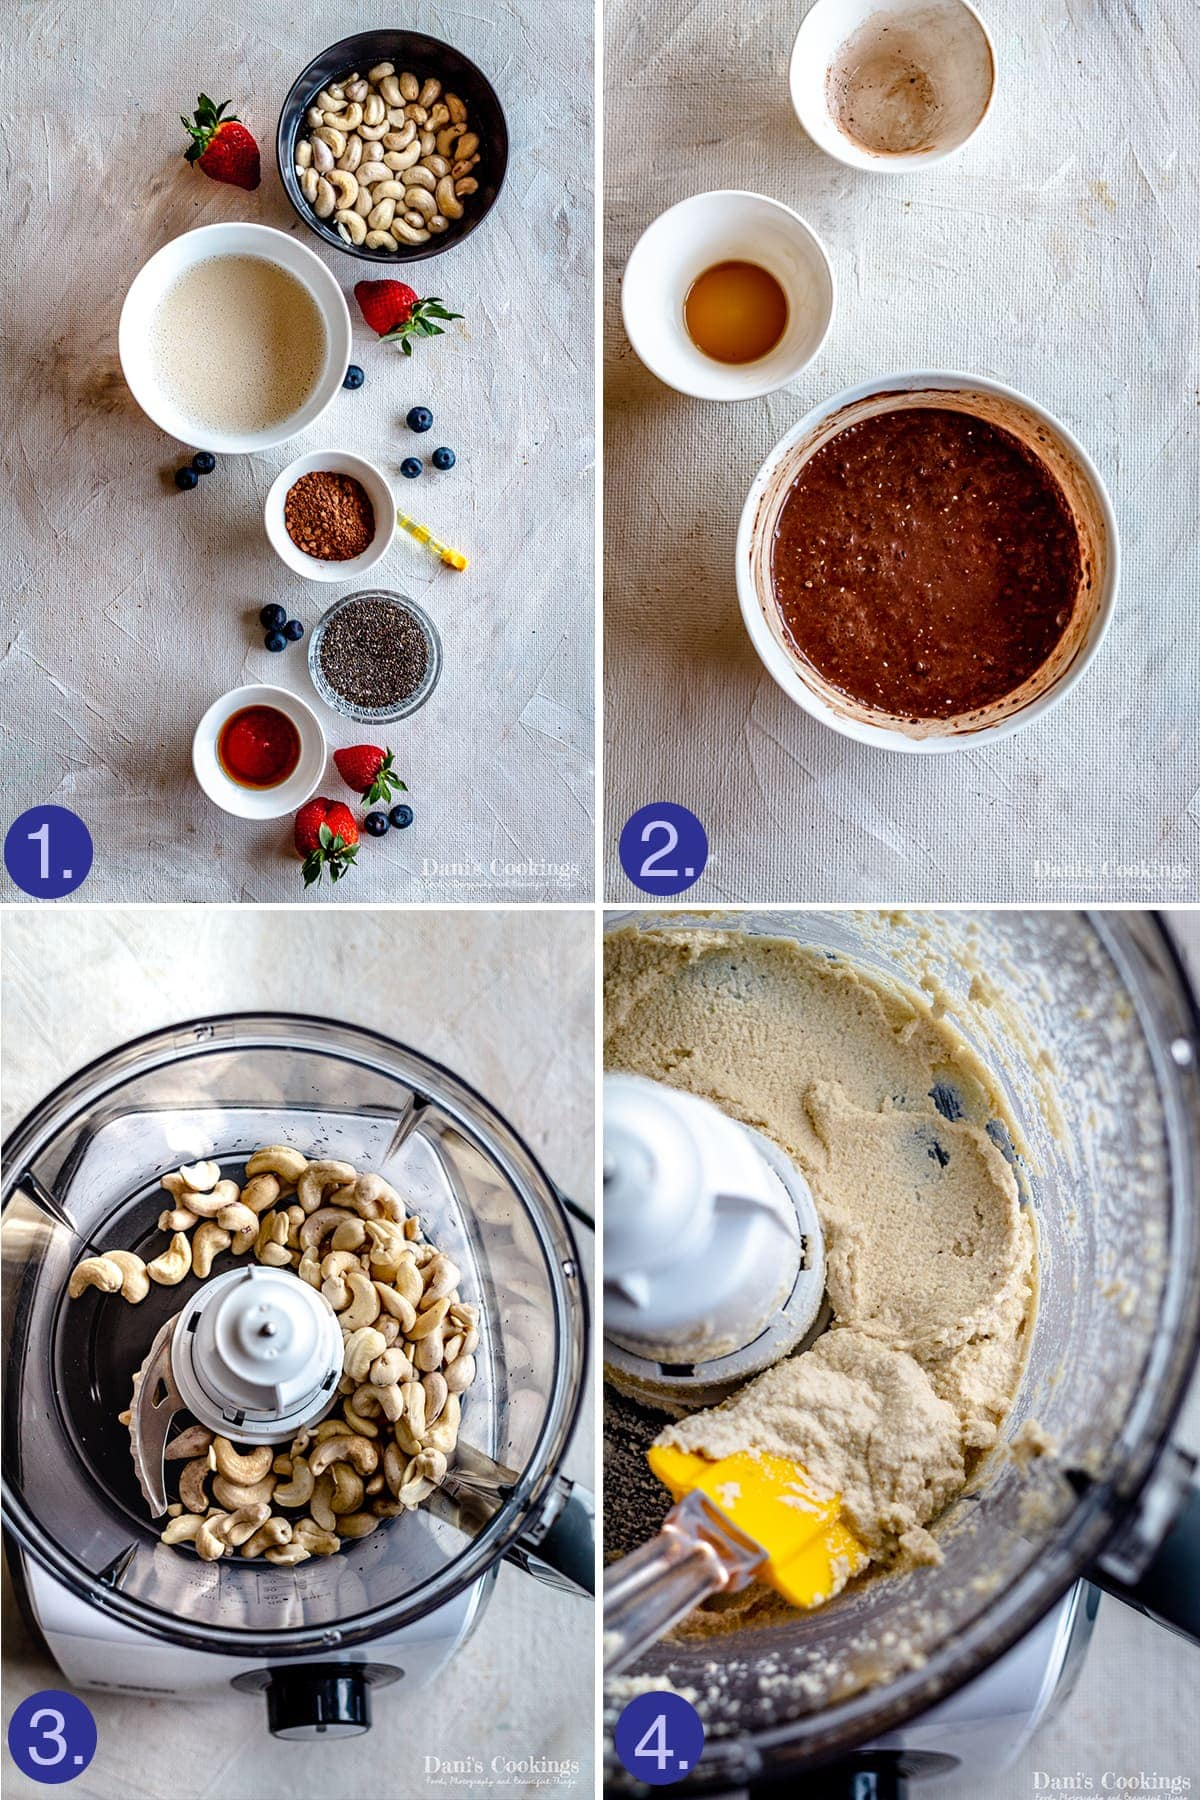 ingredients and steps to prepare the mixtures